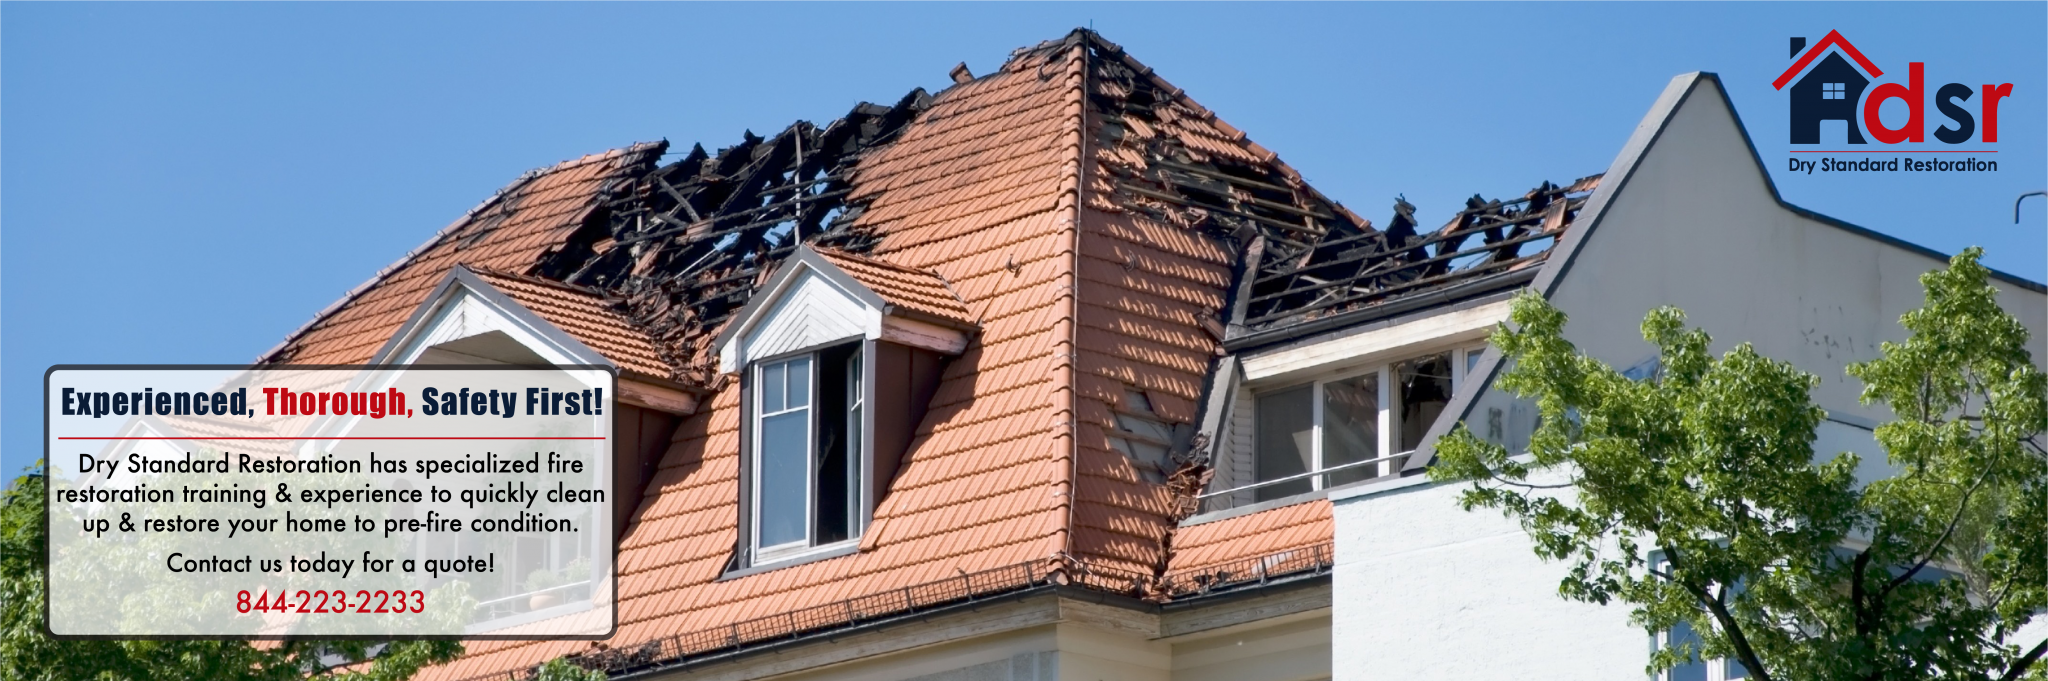 Fire Damage Restoration & Repair | St. Petersburg, Clearwater, Pinellas, Tampa